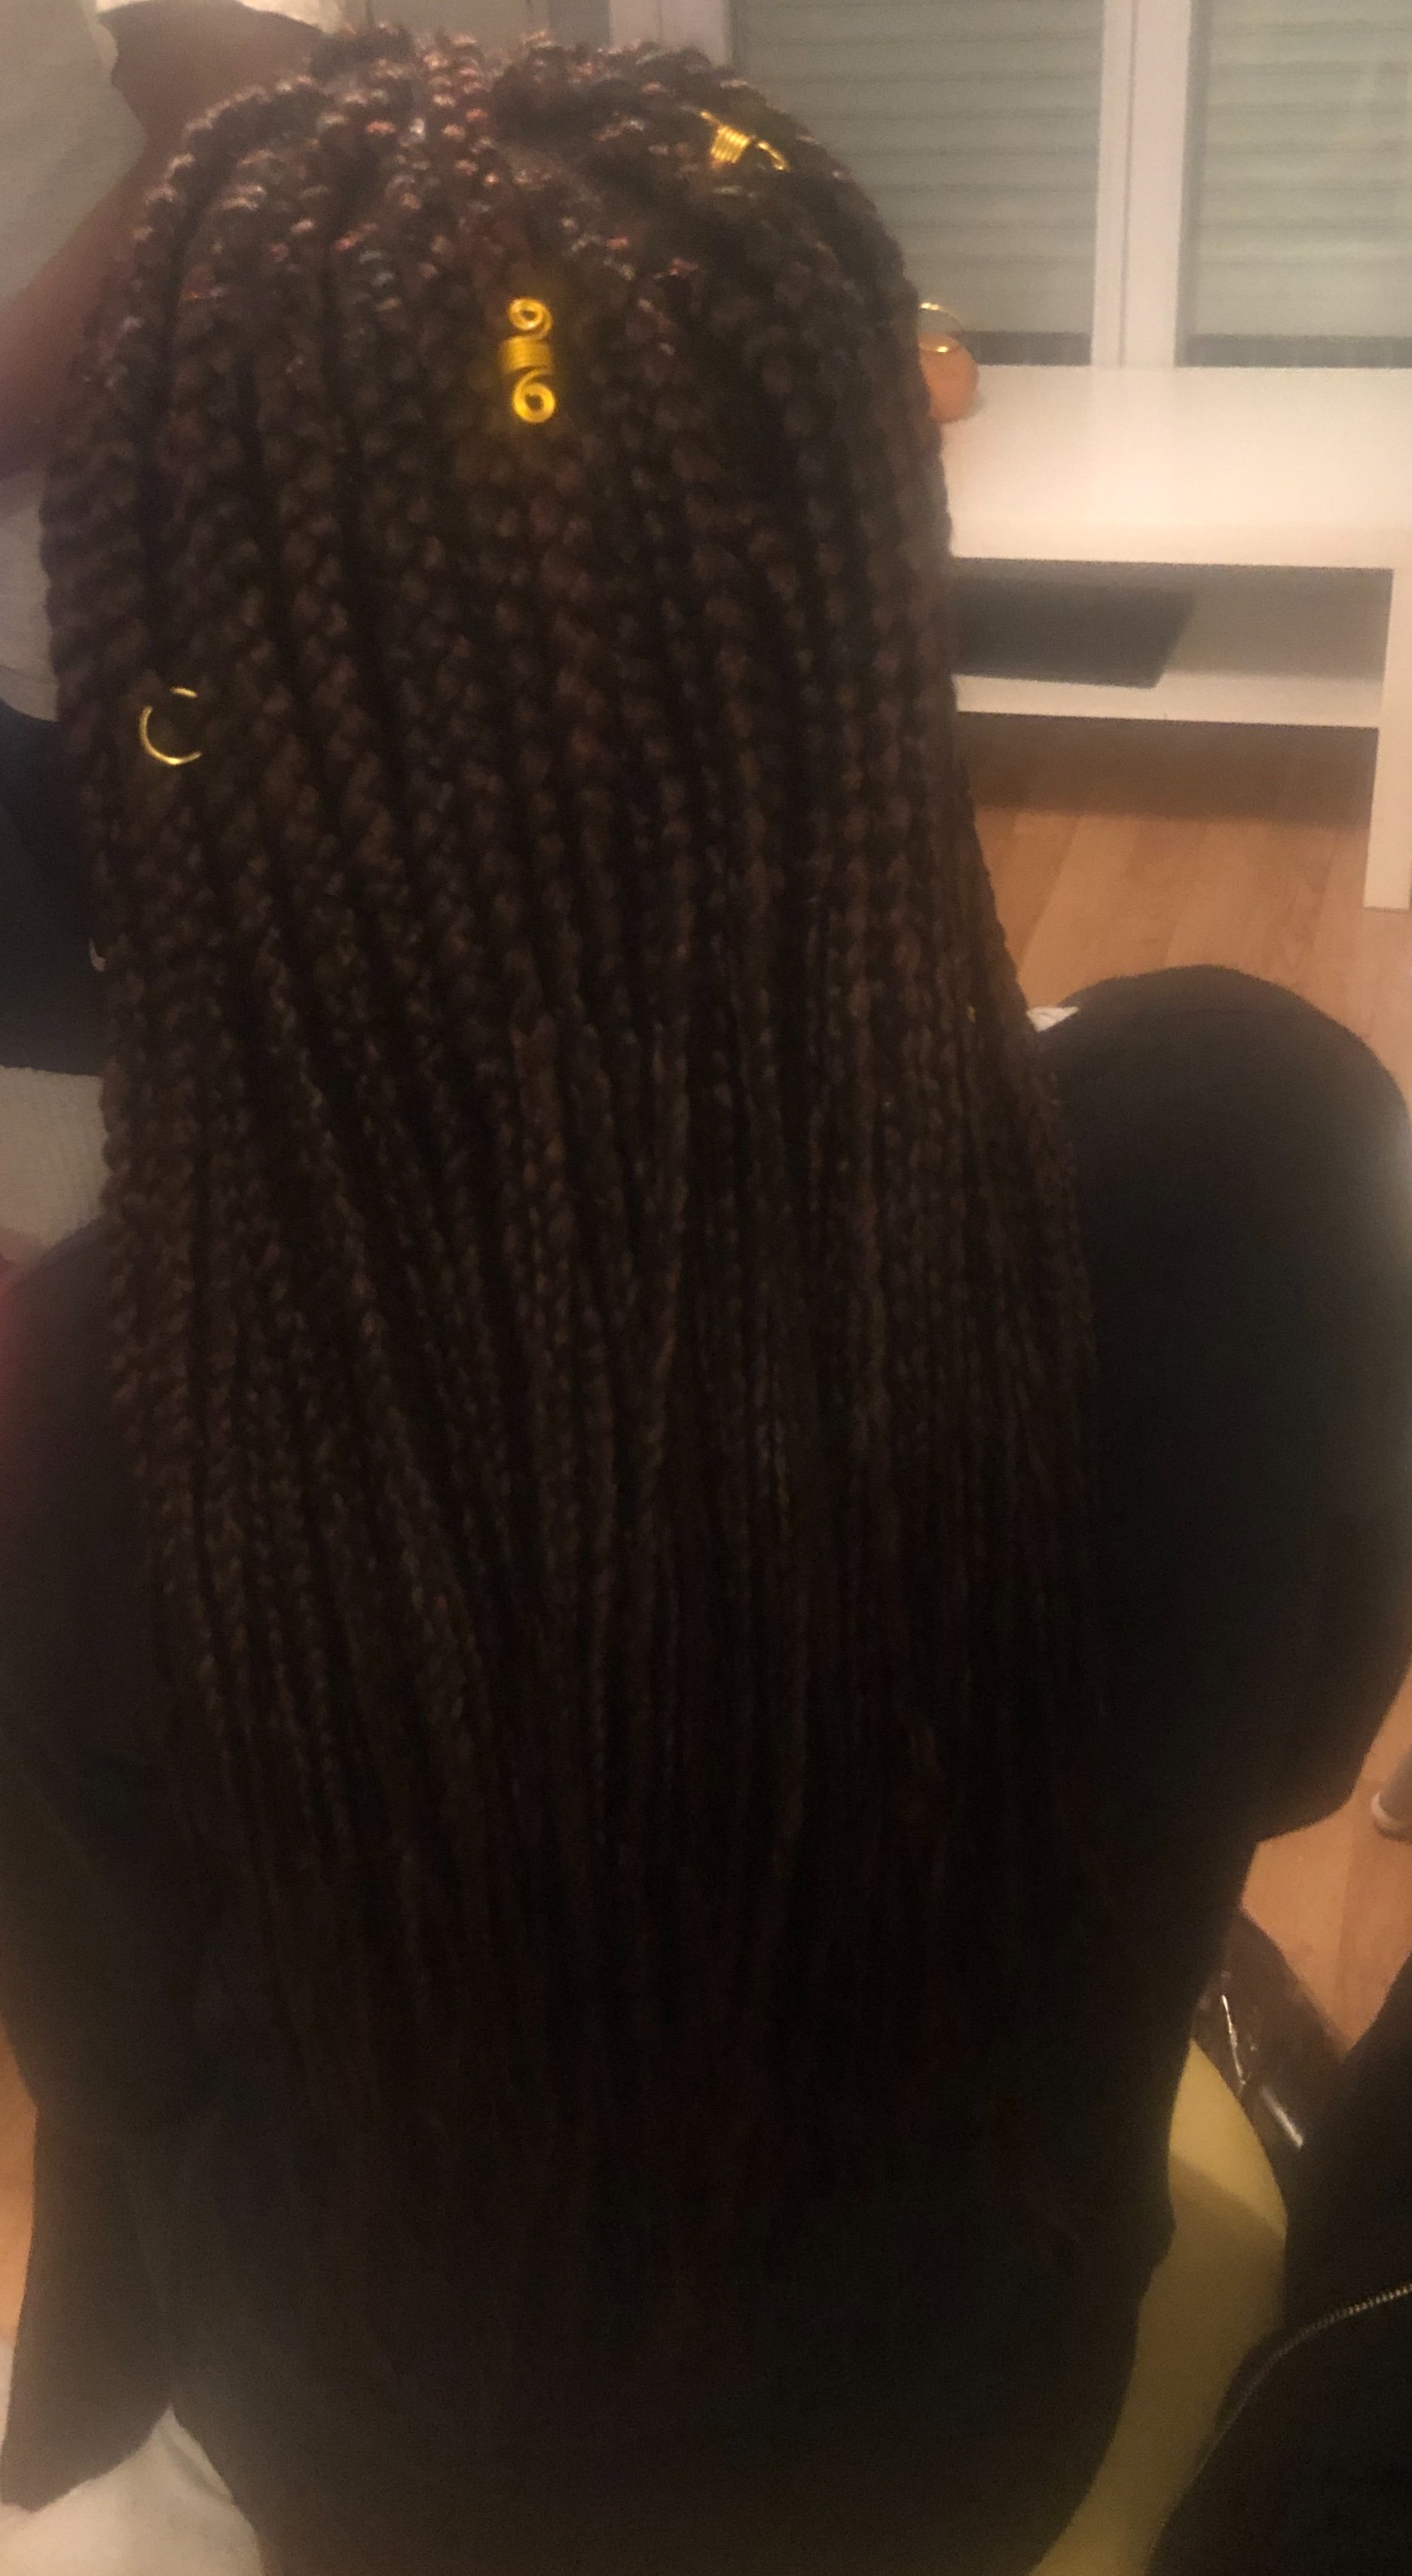 salon de coiffure afro tresse tresses box braids crochet braids vanilles tissages paris 75 77 78 91 92 93 94 95 NWJQDCRL